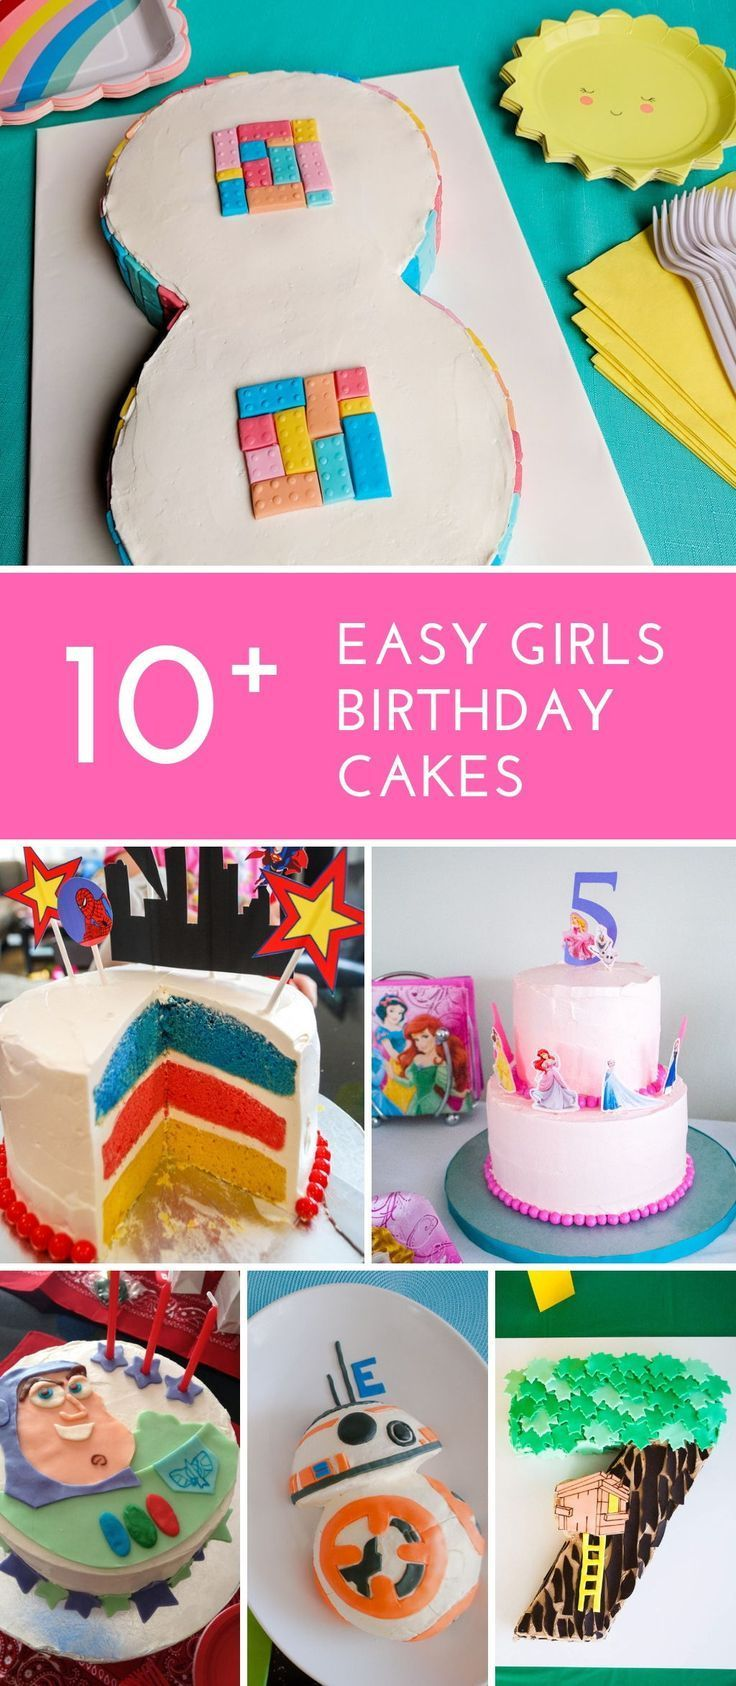 Easy Girls Birthday Cakes See These Simple Diy Girl Cake Ideas For Beginner Decorators Includes Age